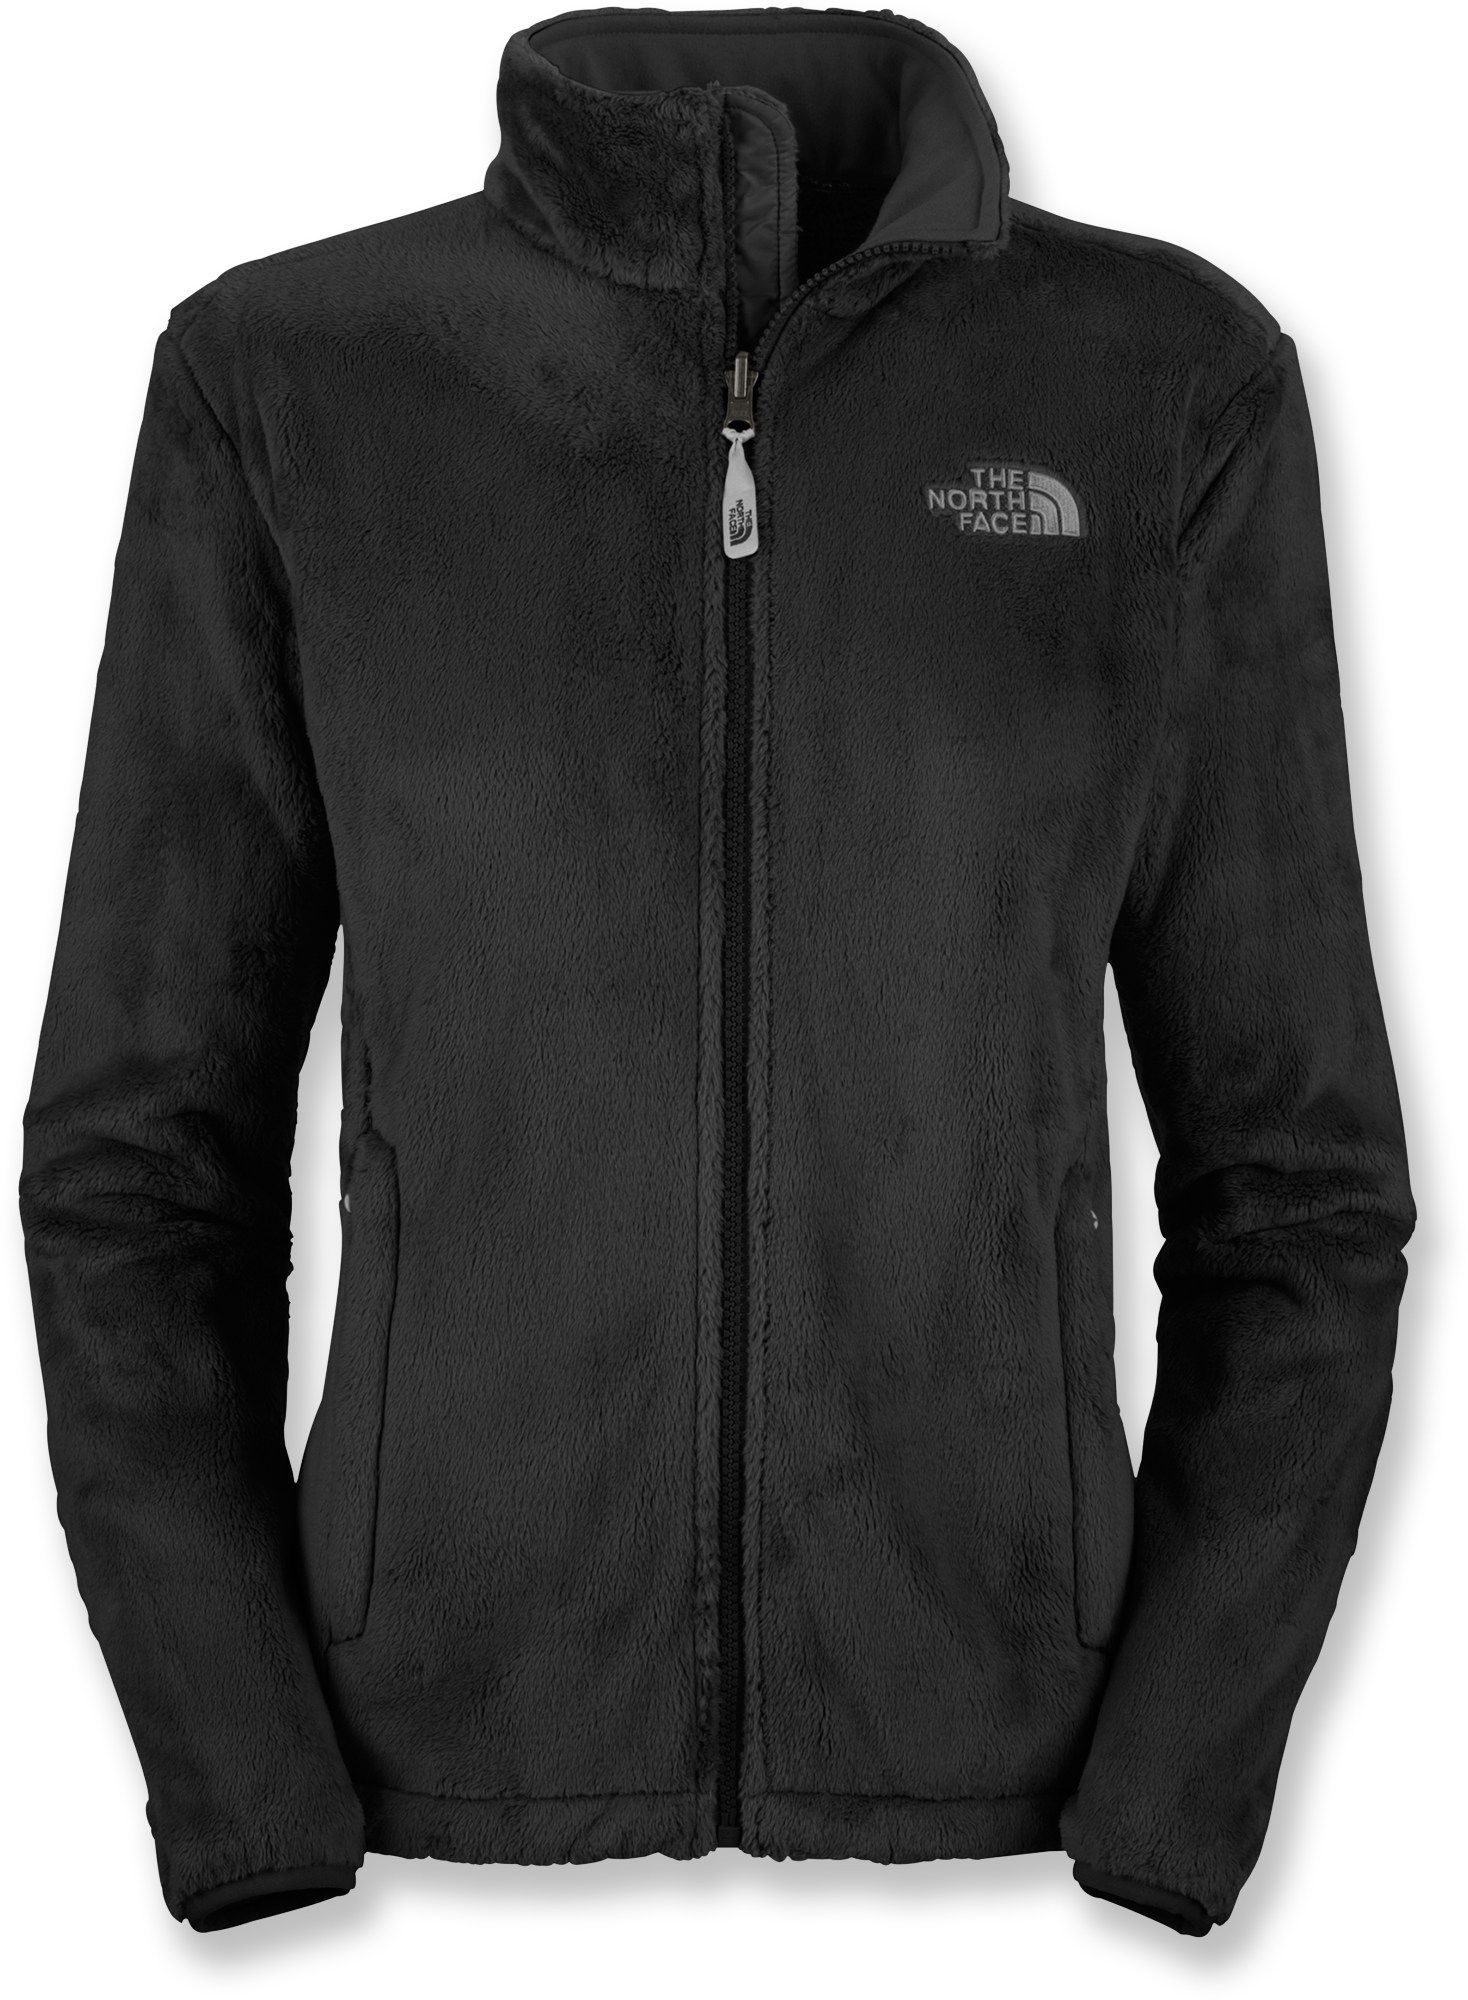 The North Face Osito Fleece Jacket - Women s - Free Shipping at REI ... d90a1a4eb142